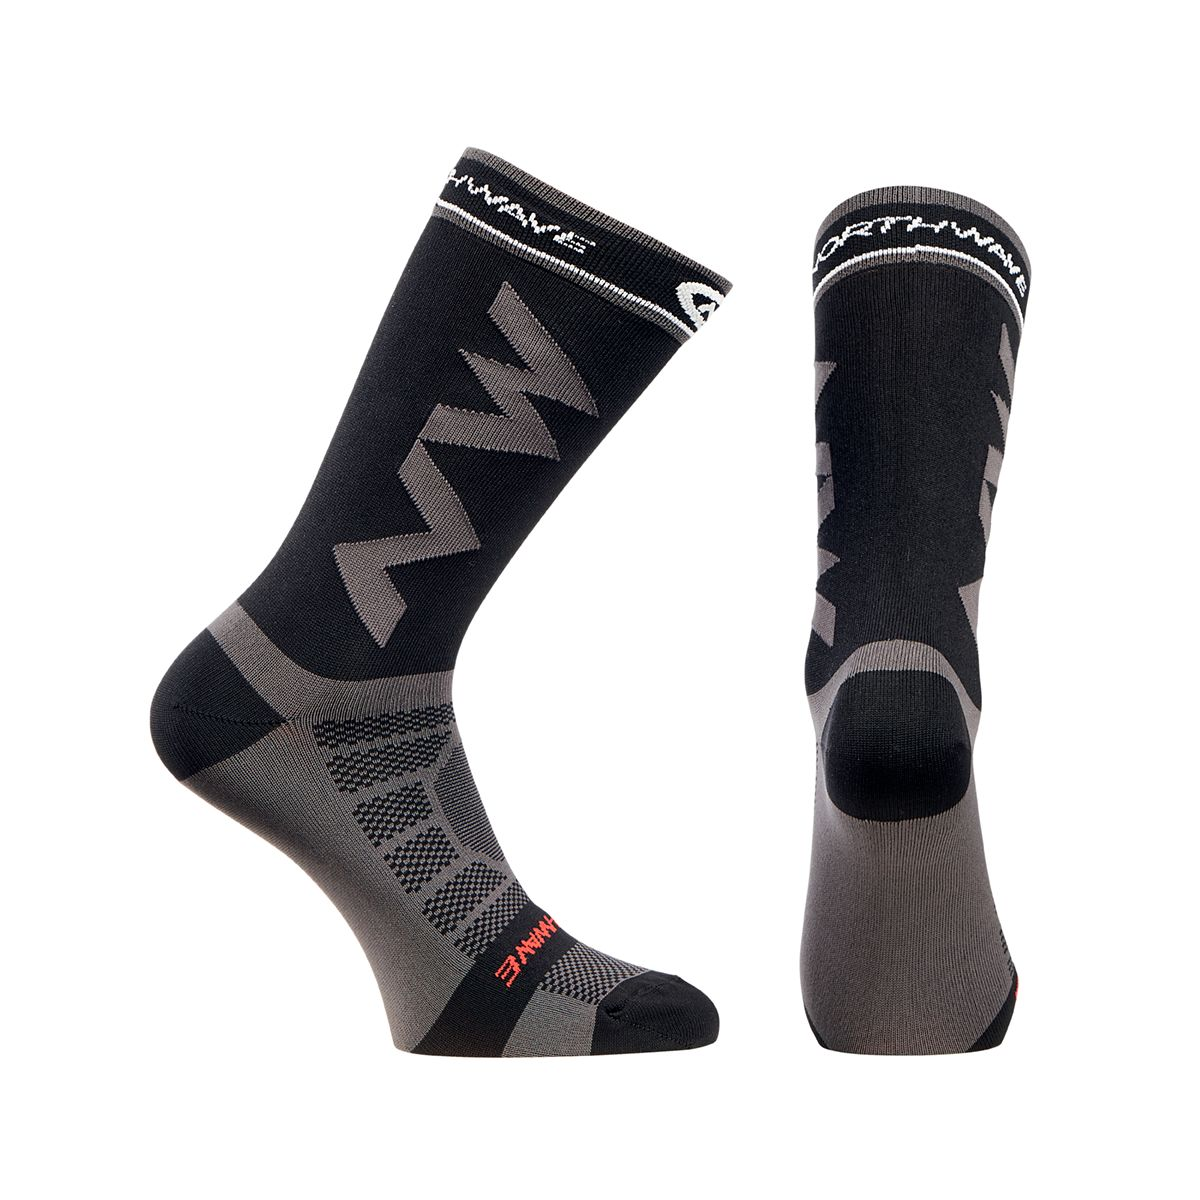 EXTREME LIGHT PRO SOCK Fahrradsocken